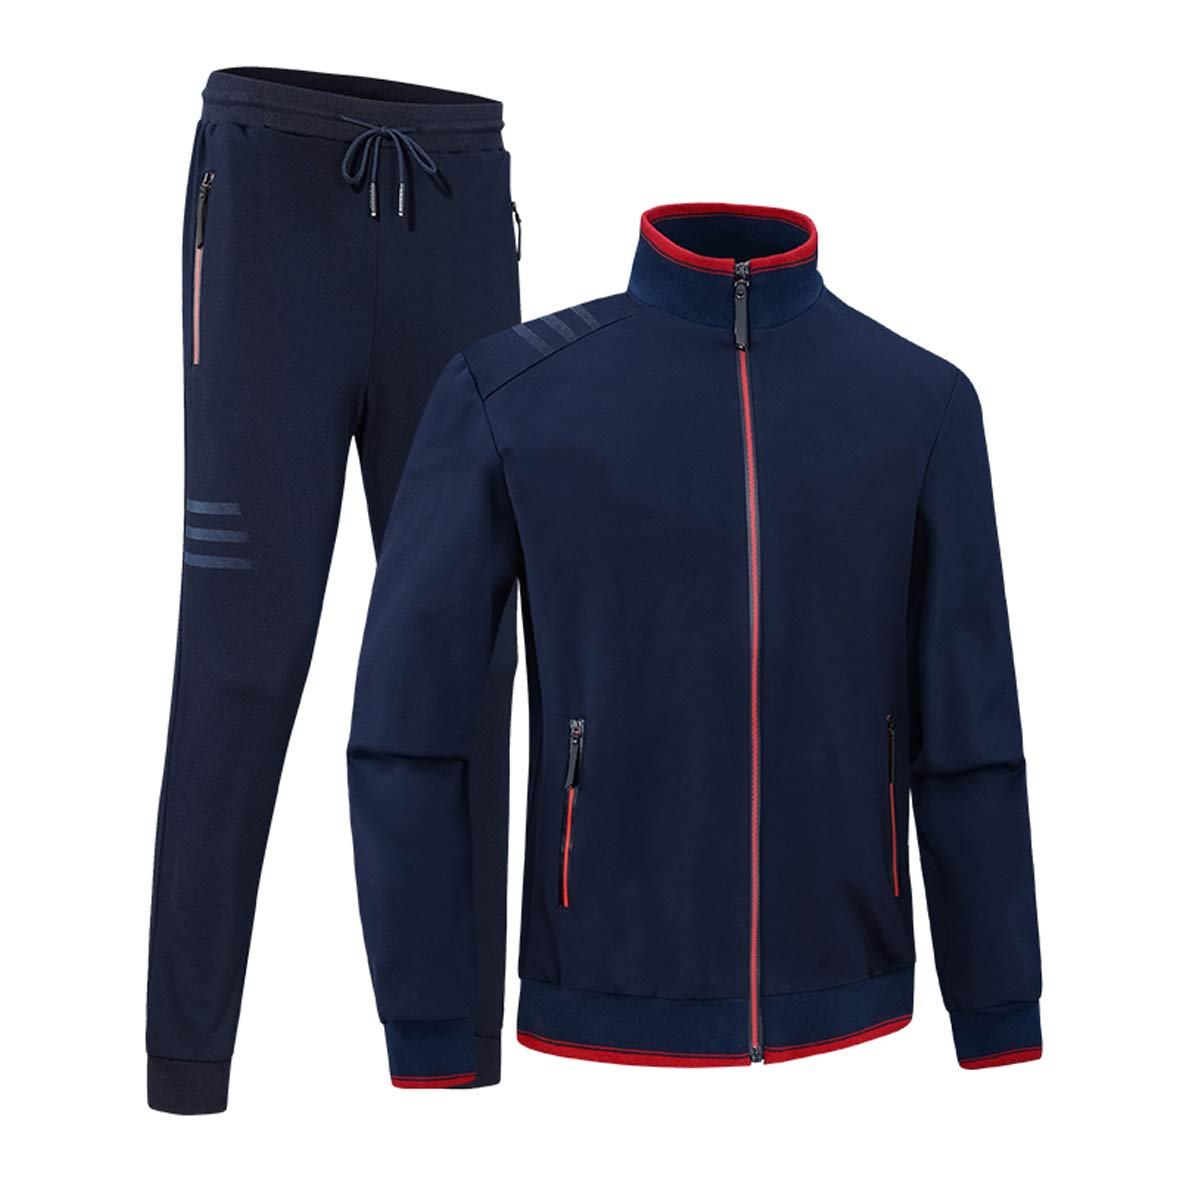 INVACHI Men's Casual 2 Pieces Contrast Cord Full Zip Sports Sets Jacket & Pants Active Fitness Tracksuit Set Navy by INVACHI